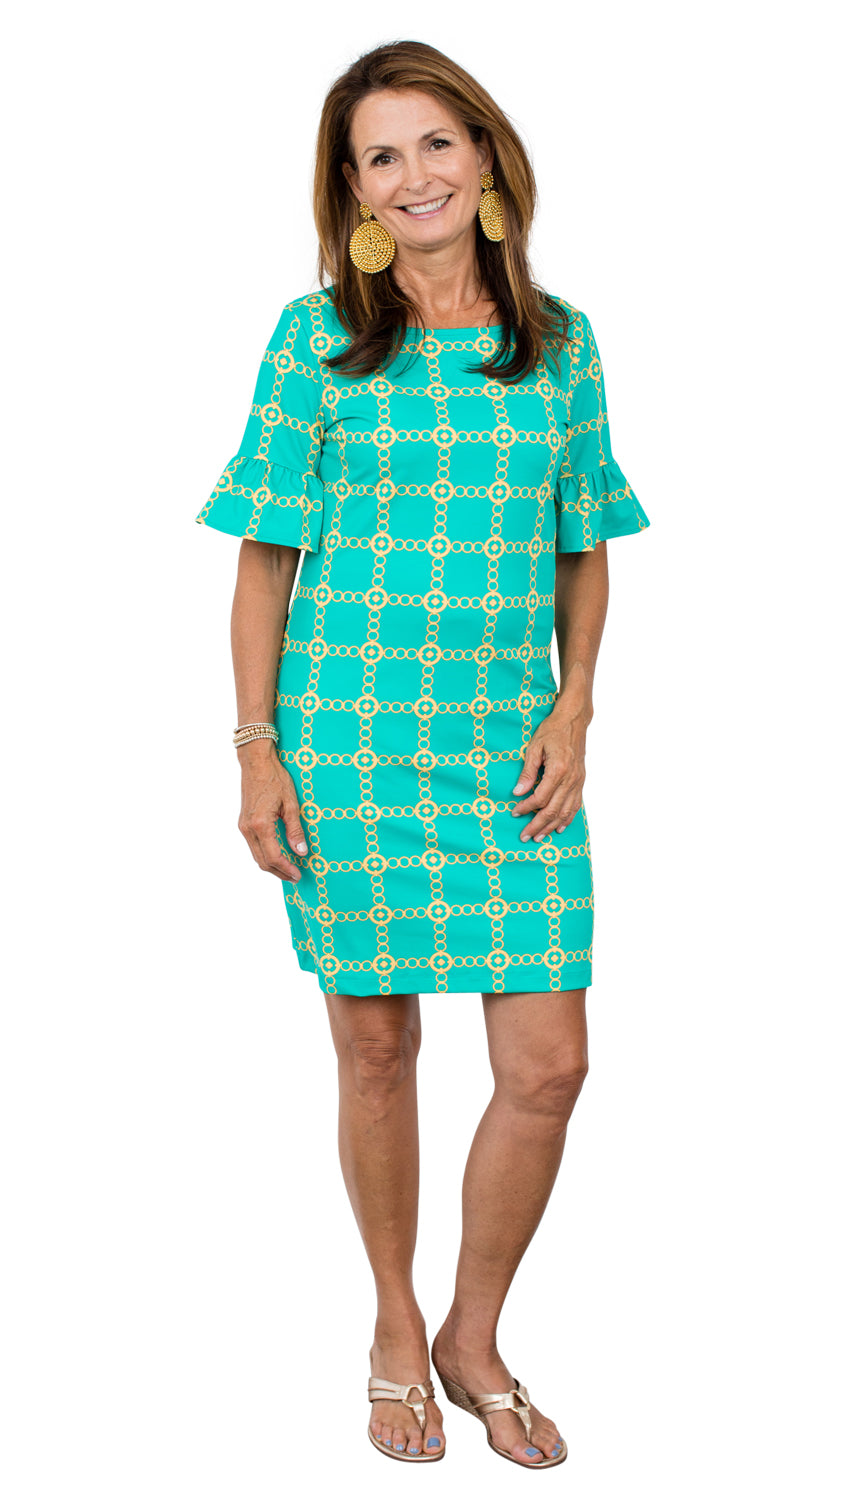 Dockside Dress - Green/Gold Autumn Chain FINAL SALE